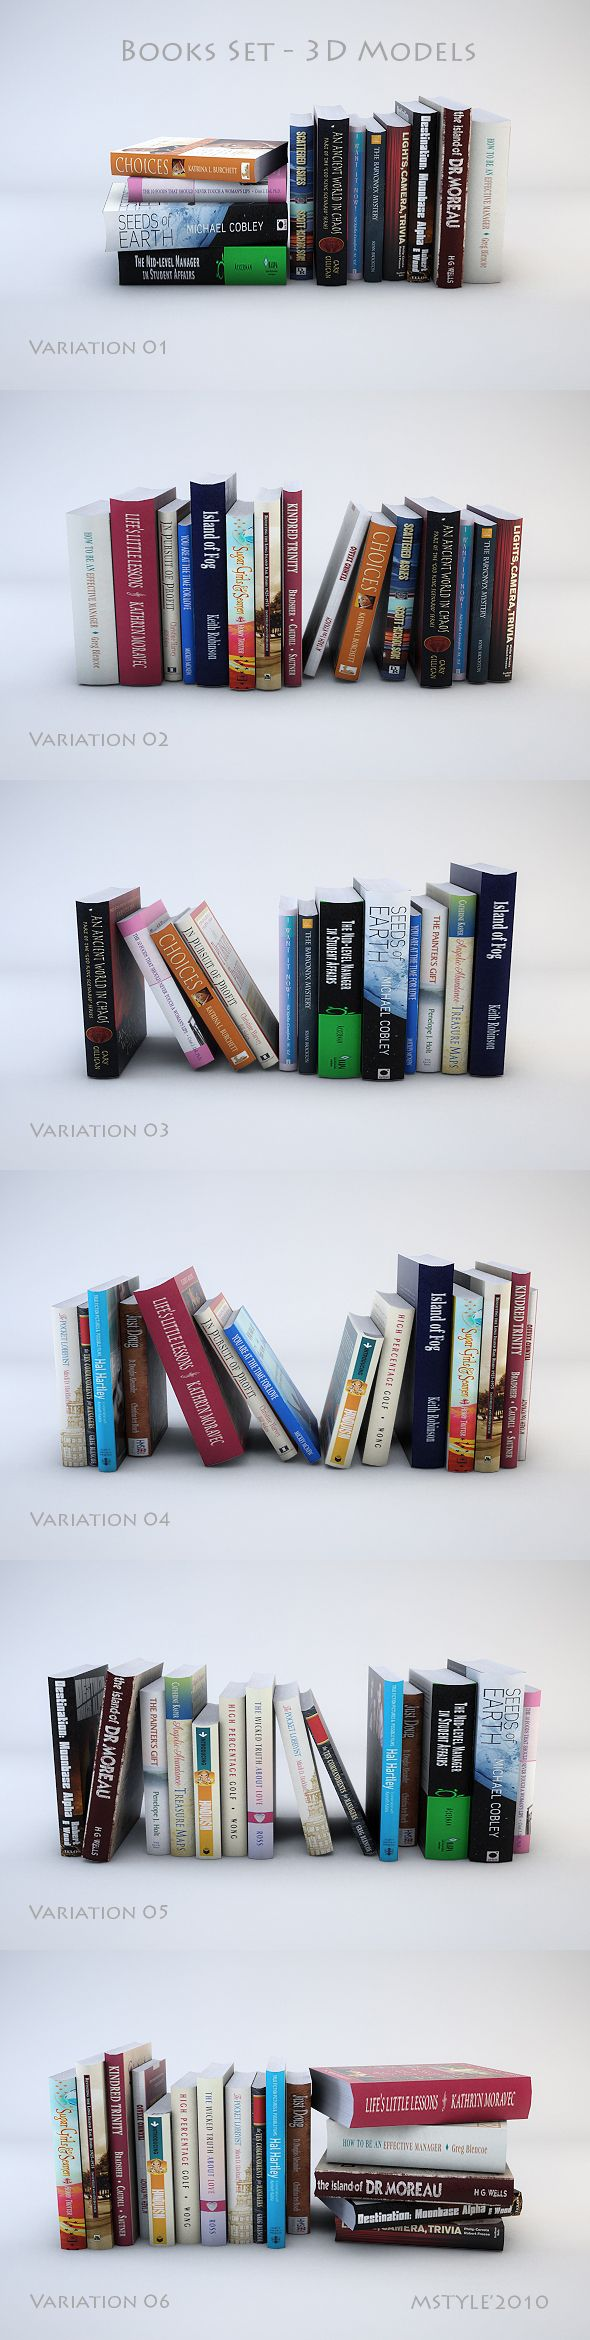 Books Set - 3D Models - 3DOcean Item for Sale